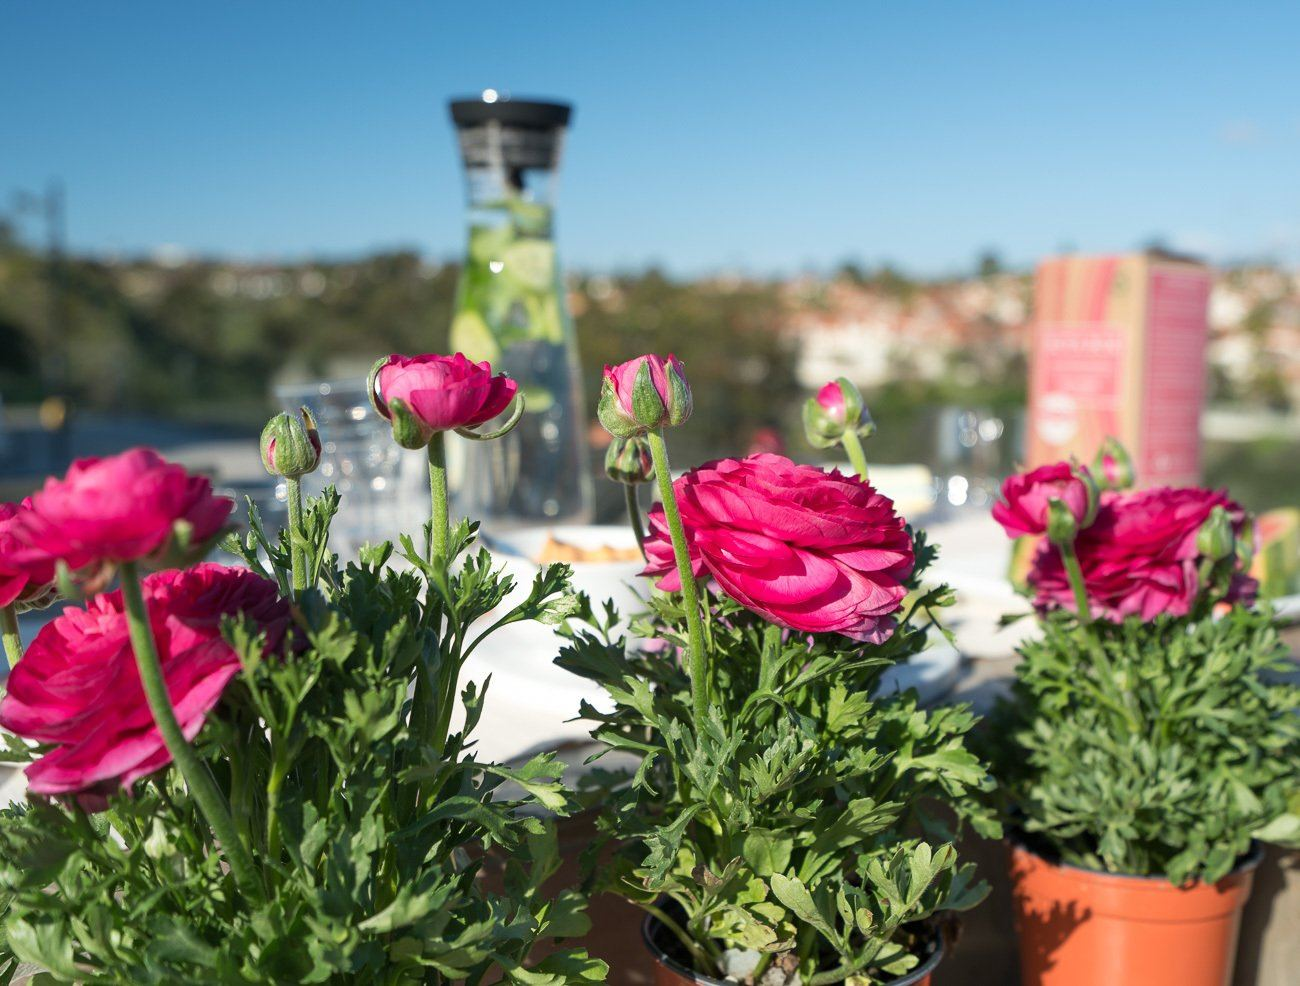 Use potted flowers and plants as decor for your next outdoor gathering.